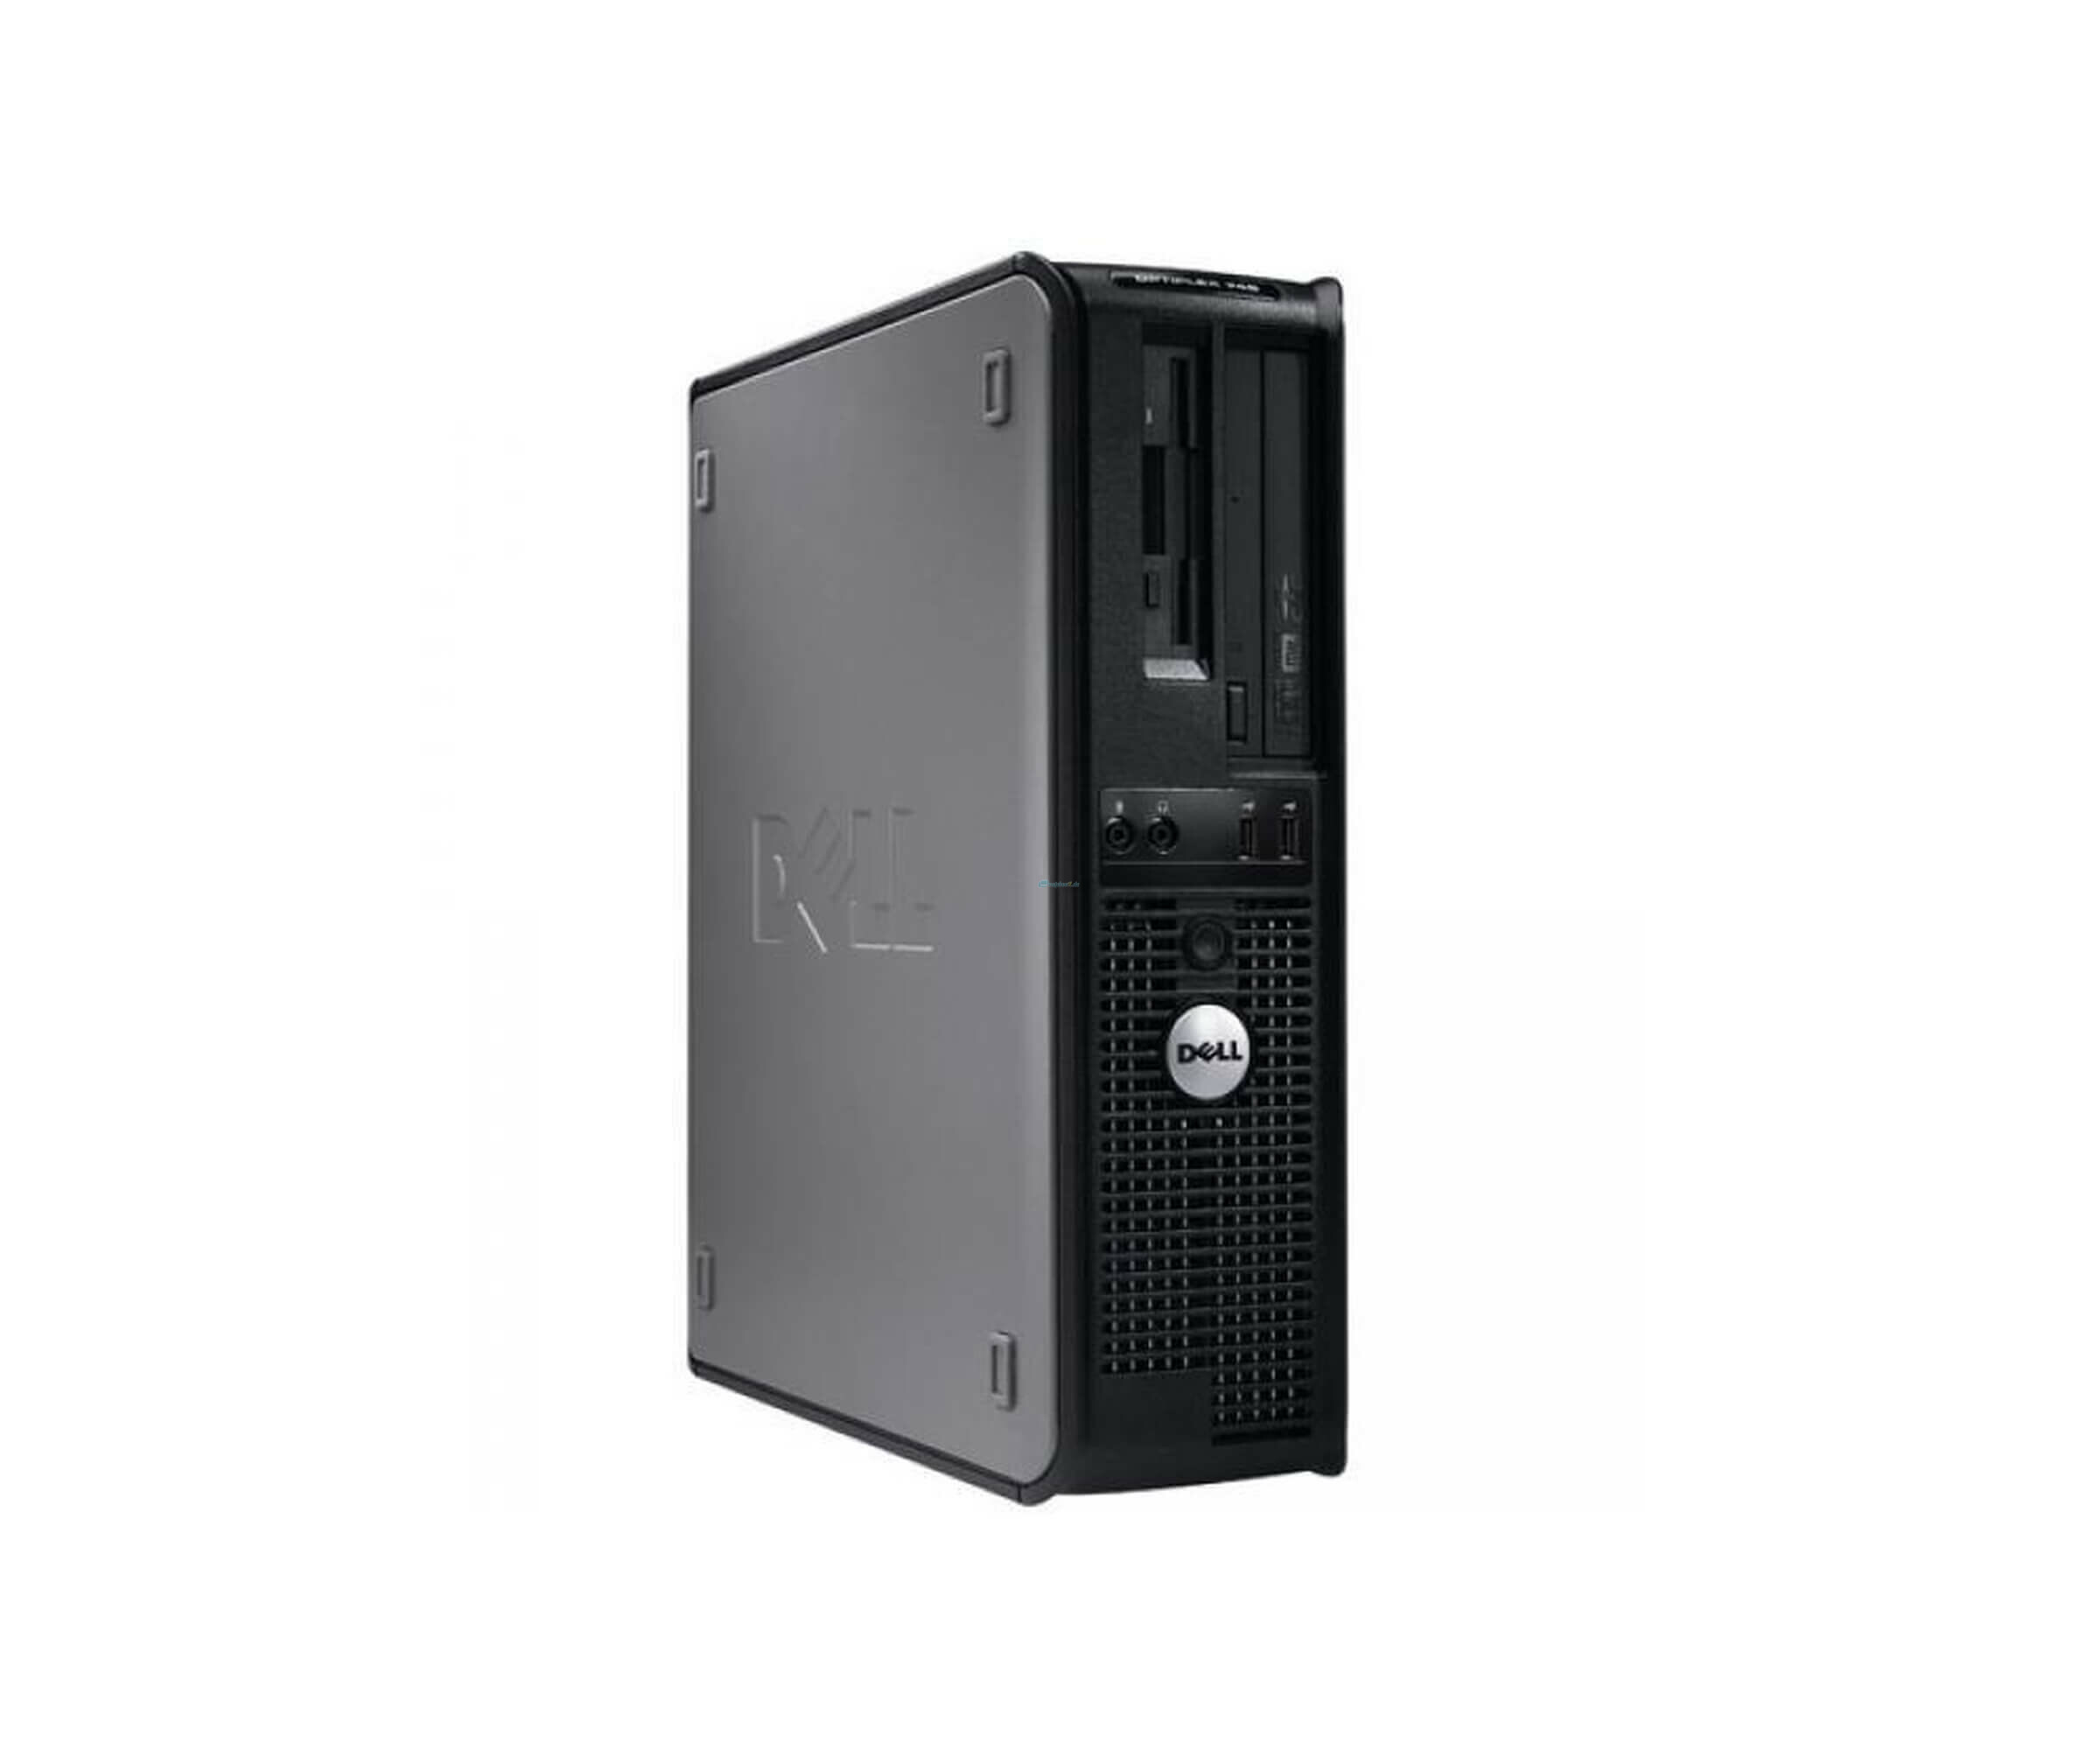 PC Systeme, Computer - DELL Optiplex 740 DCNE Desktop AMD ATHLON 64 X2 DC 3800 2,00GHz 1GB DDR2 RAM 80GB Festplatte DVD Rom Gebraucht  - Onlineshop Noteboox.de